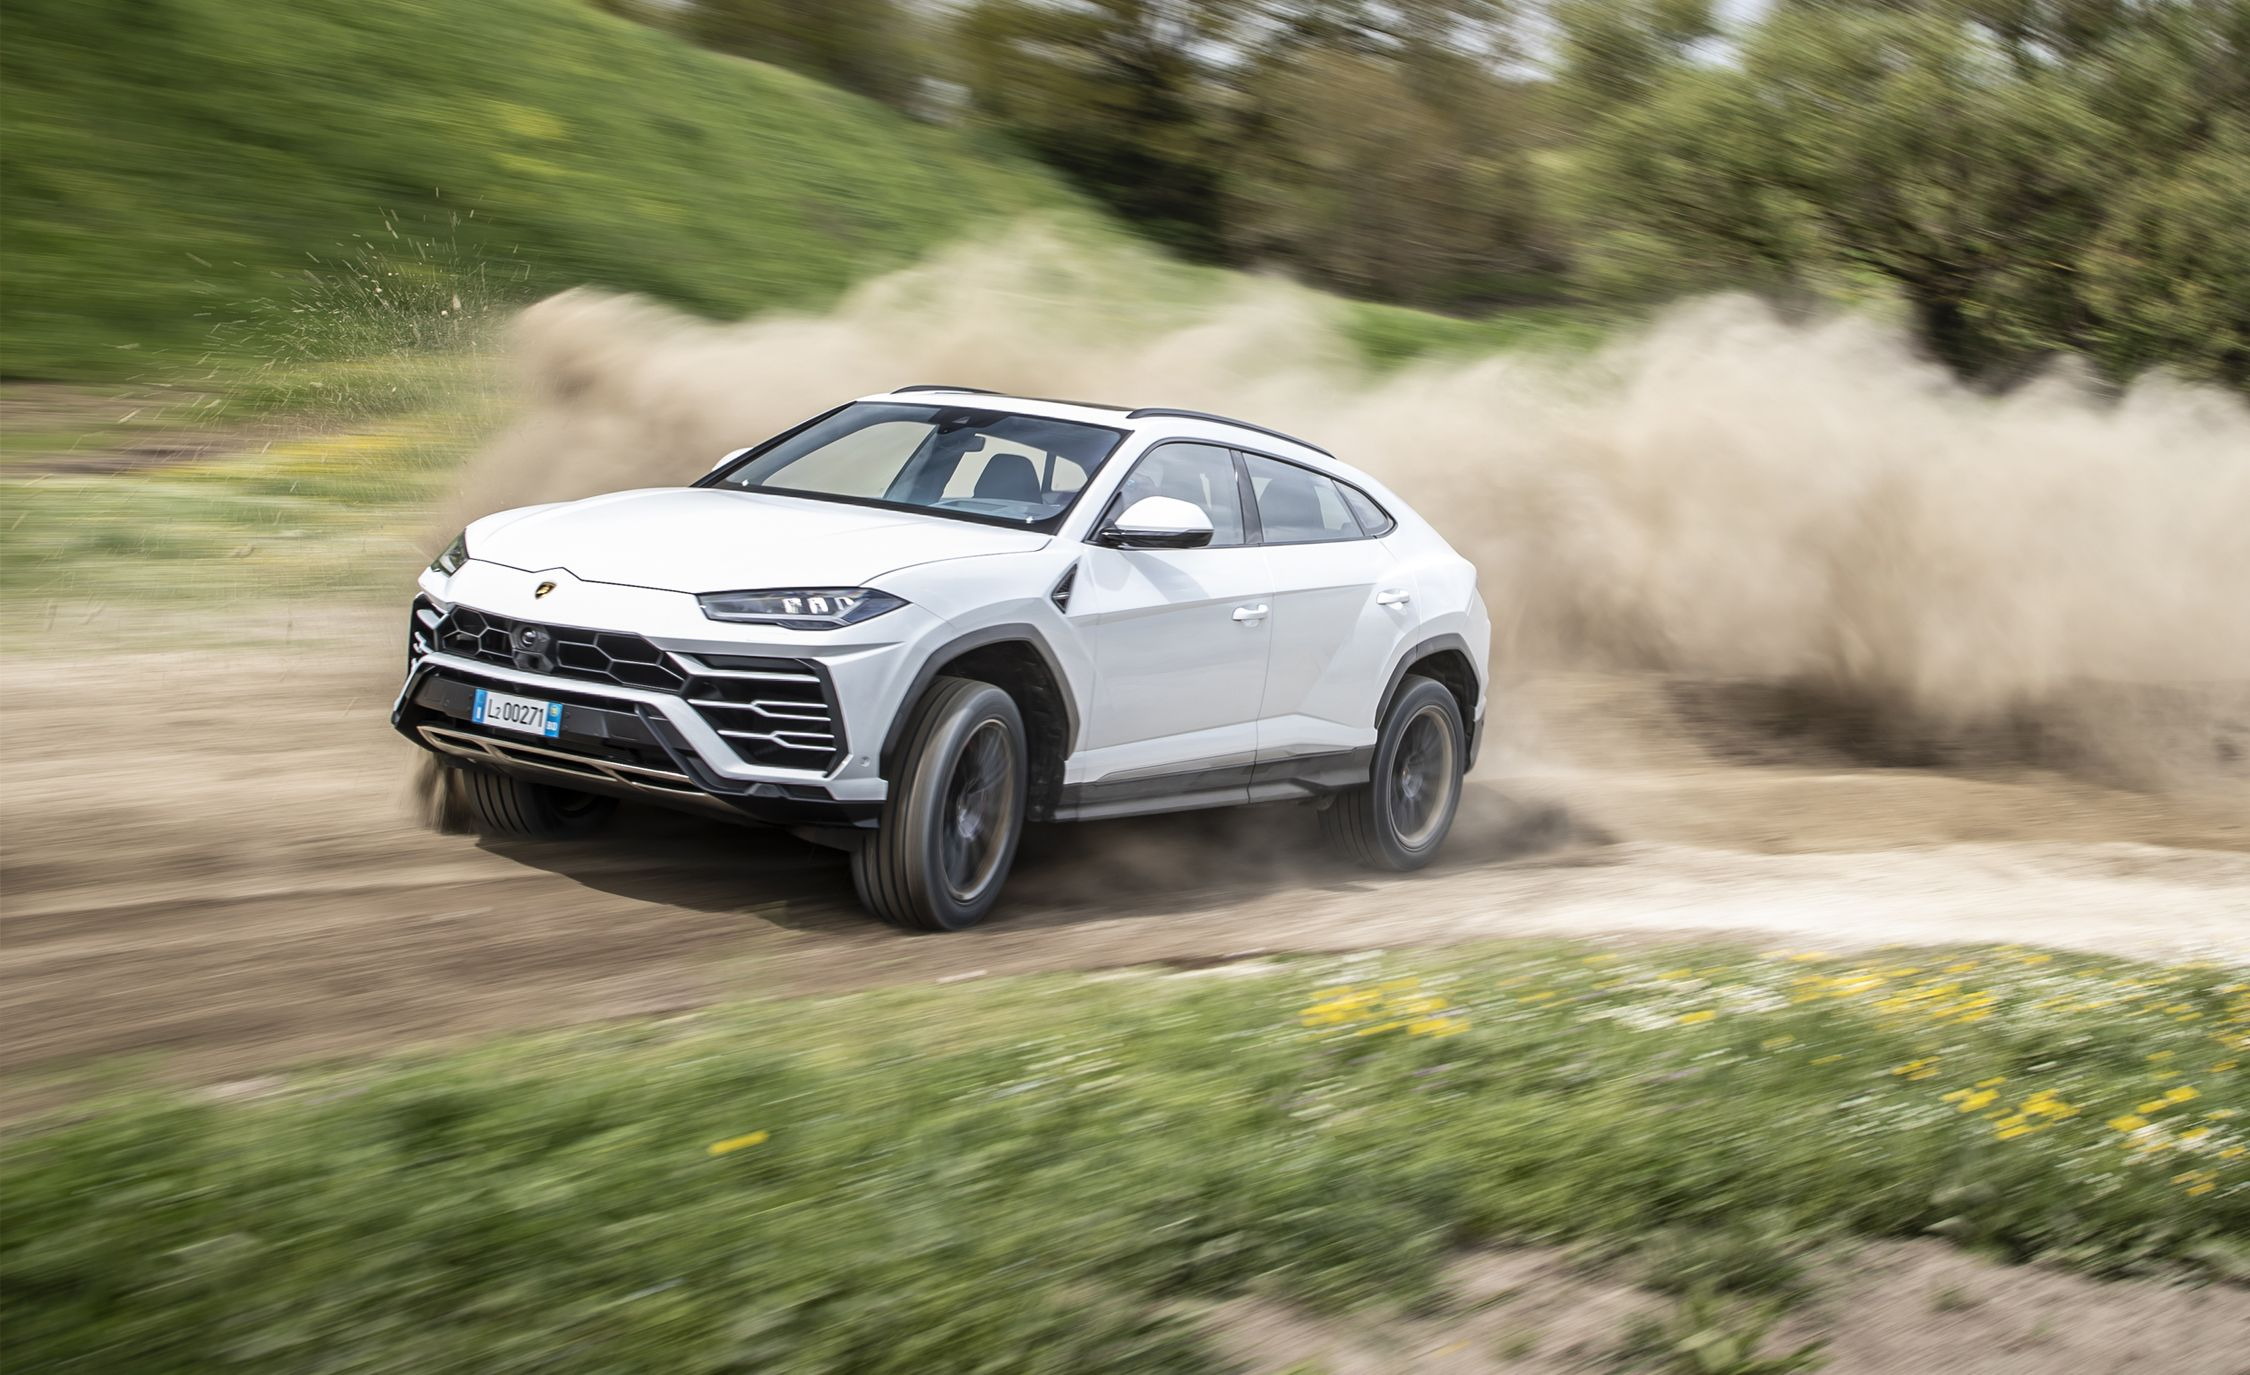 2019 Lamborghini Urus First Drive The Crossbreed Bull Review Car And Driver